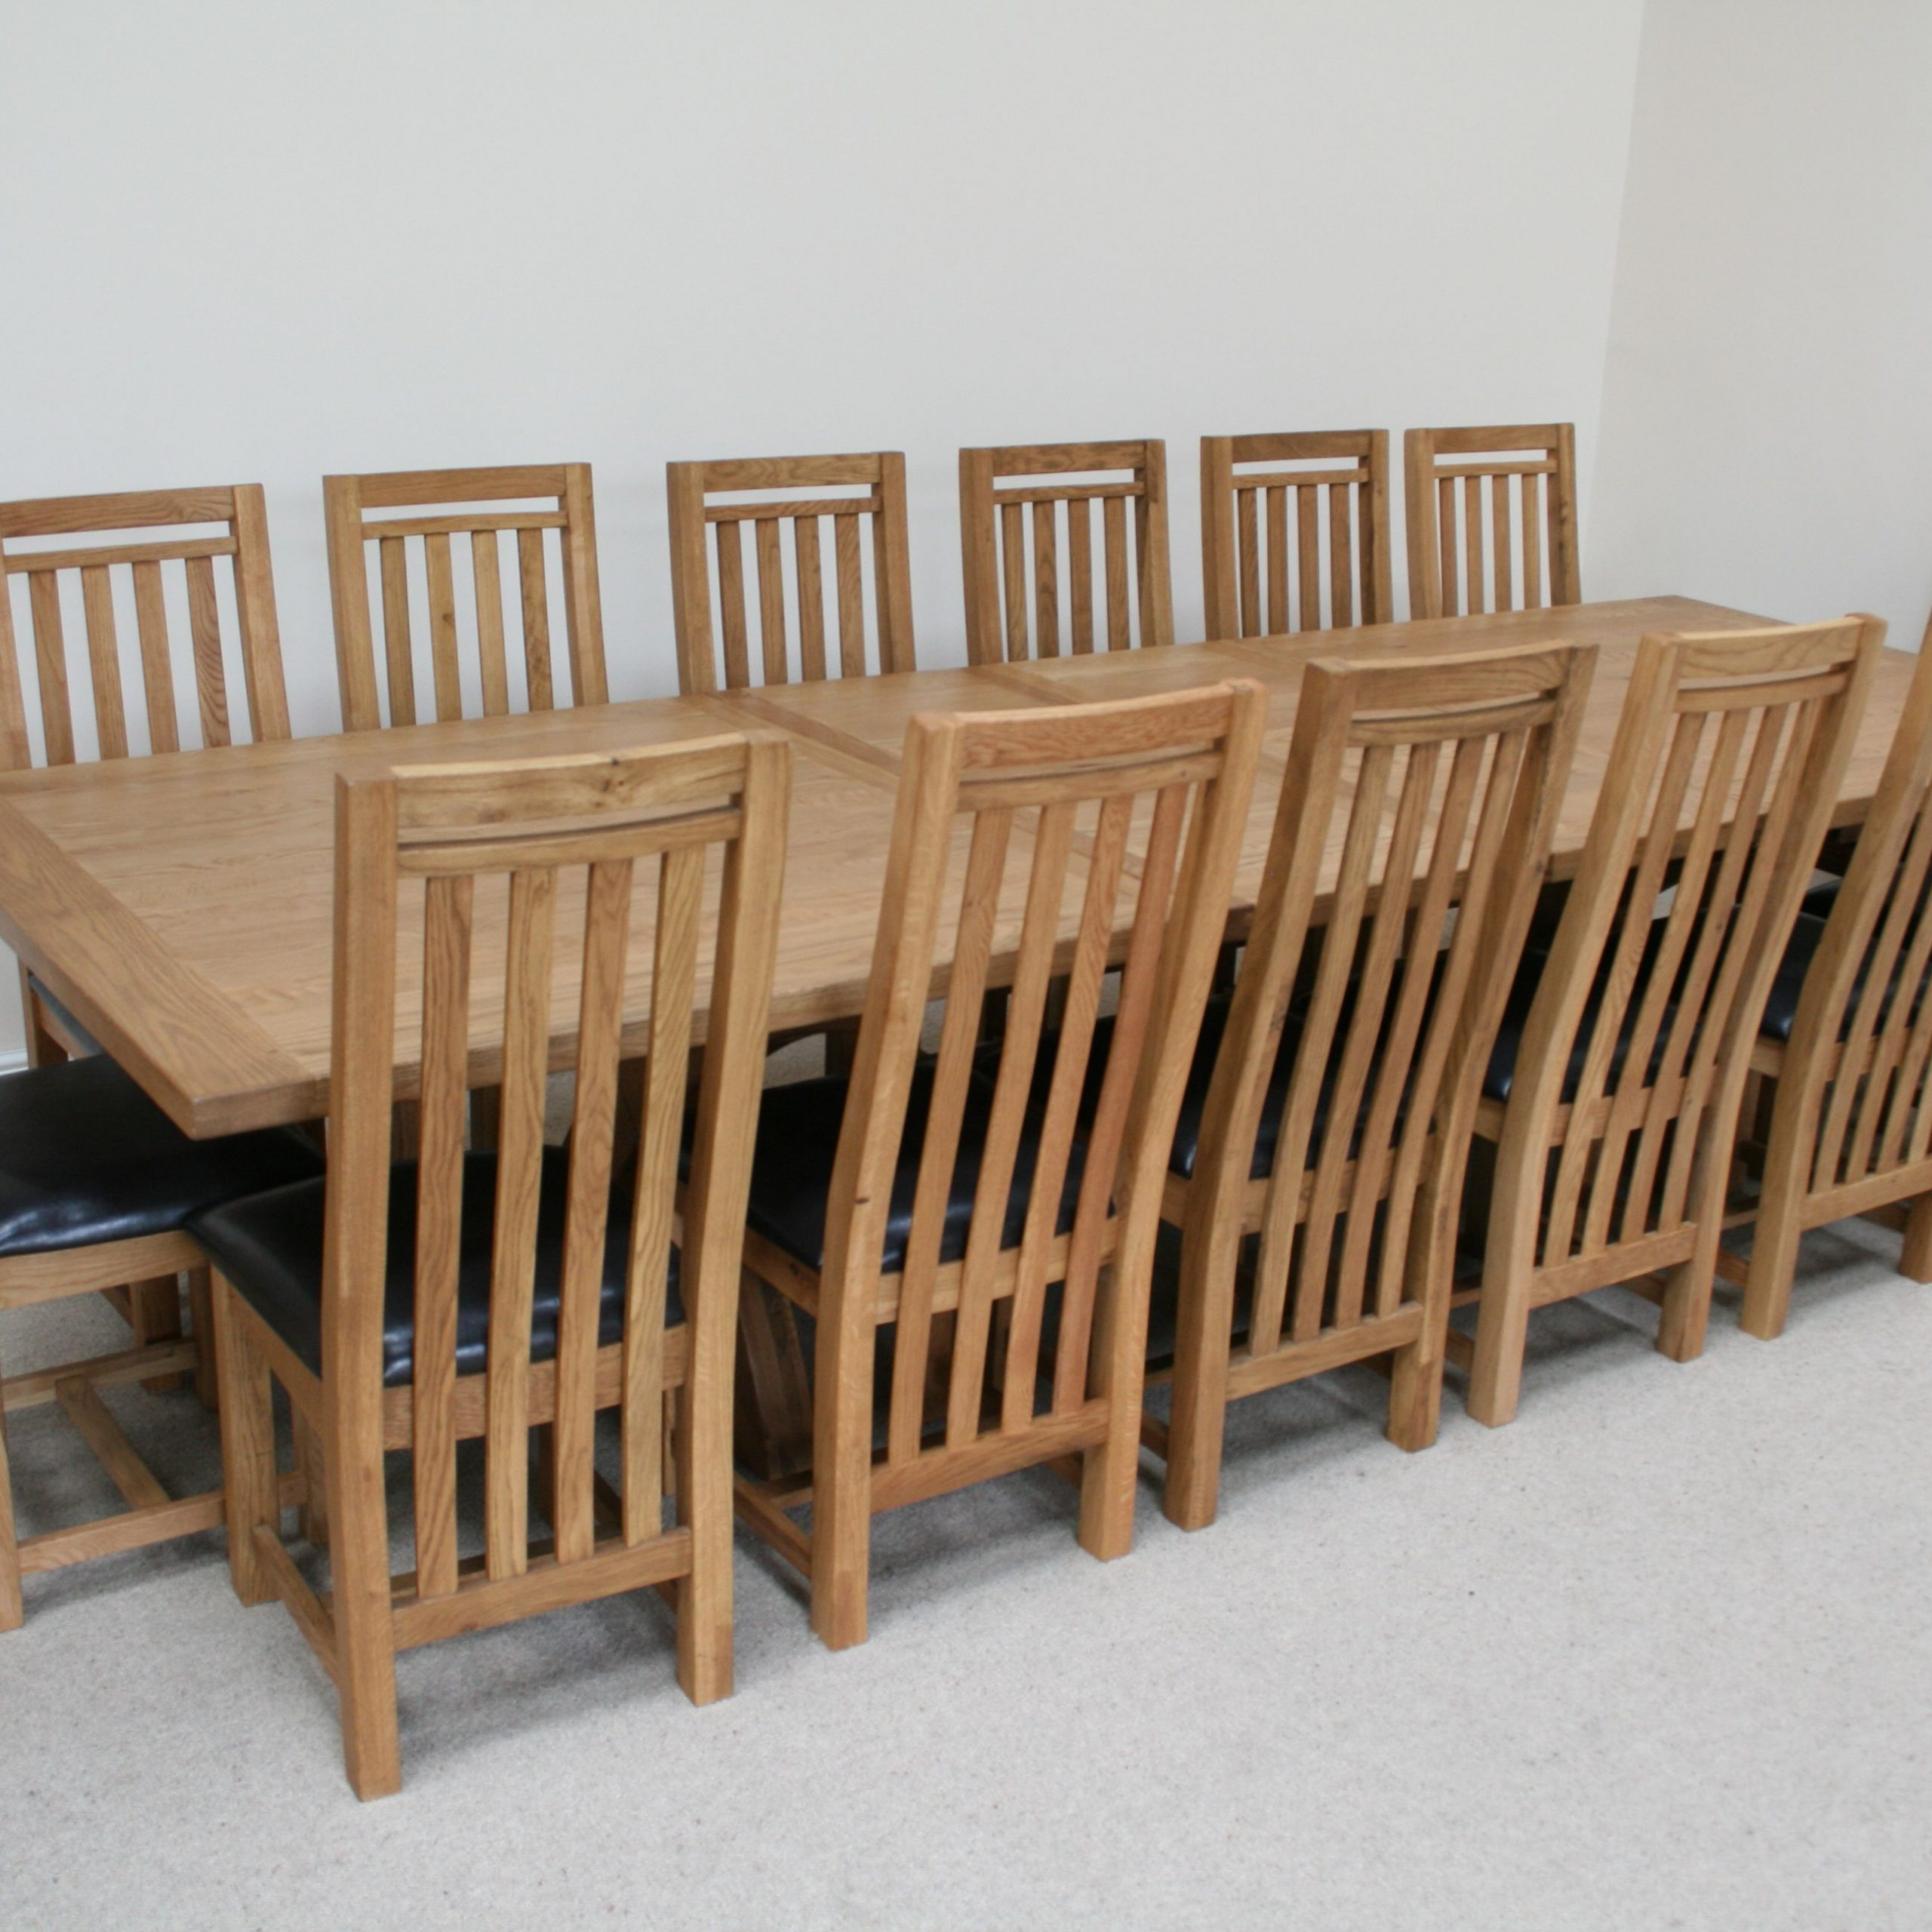 Favorite 8 Seater Wood Contemporary Dining Tables With Extension Leaf Within Furniture : Expandable Dining Table For 10 Pringombo Home (View 7 of 25)